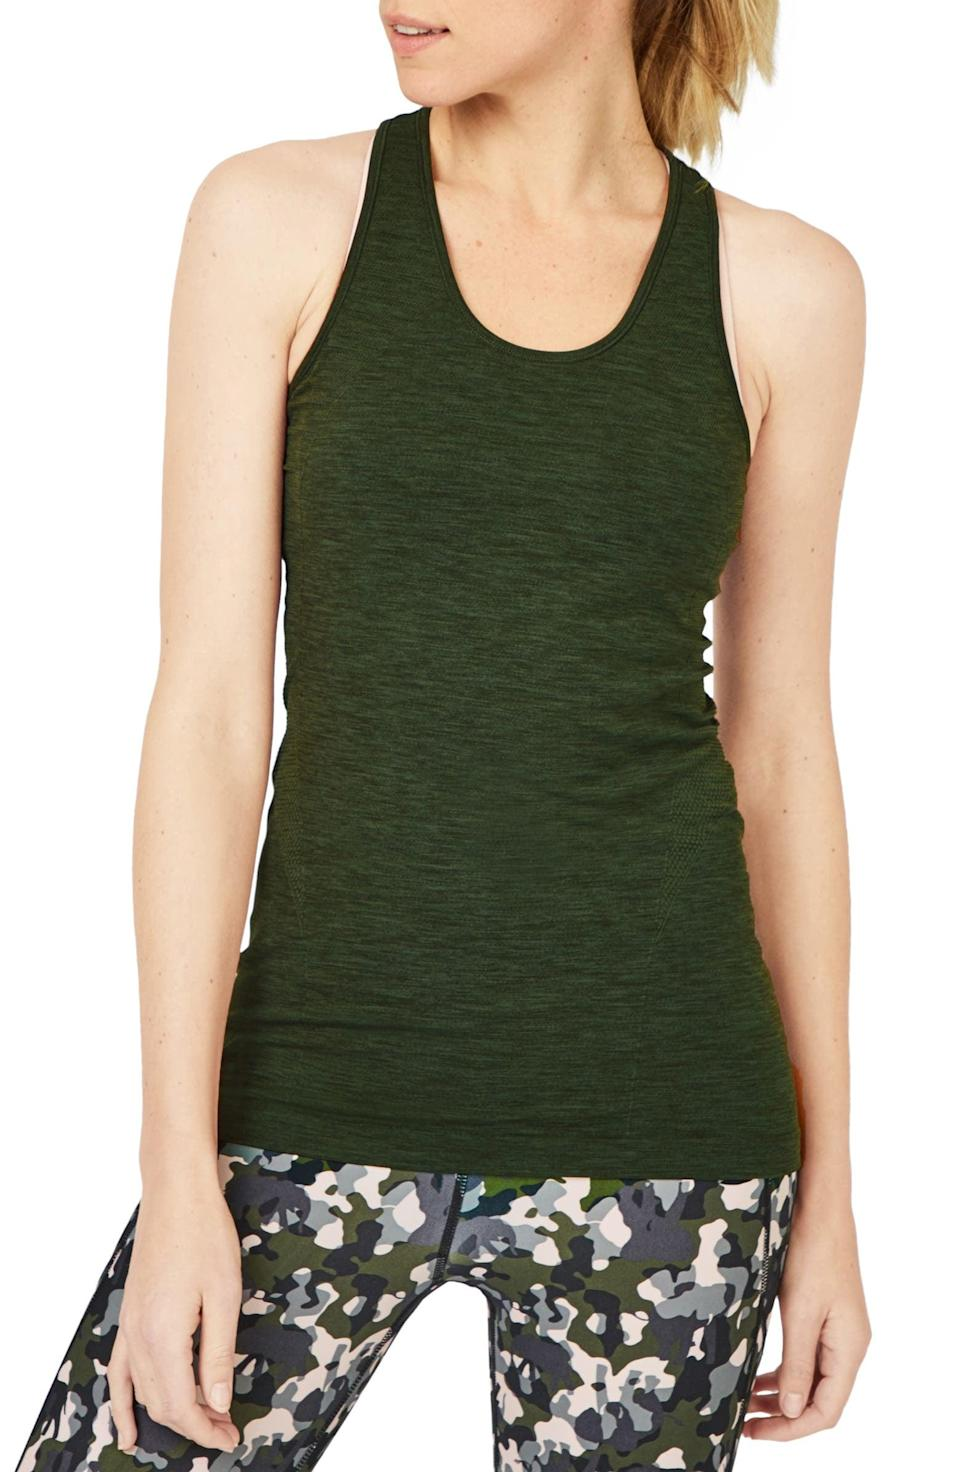 <p>For me, the hunt for the perfect workout tank is eternal. I like this classic <span>Sweaty Betty Athlete Seamless Racerback Tank</span> ($48).</p>